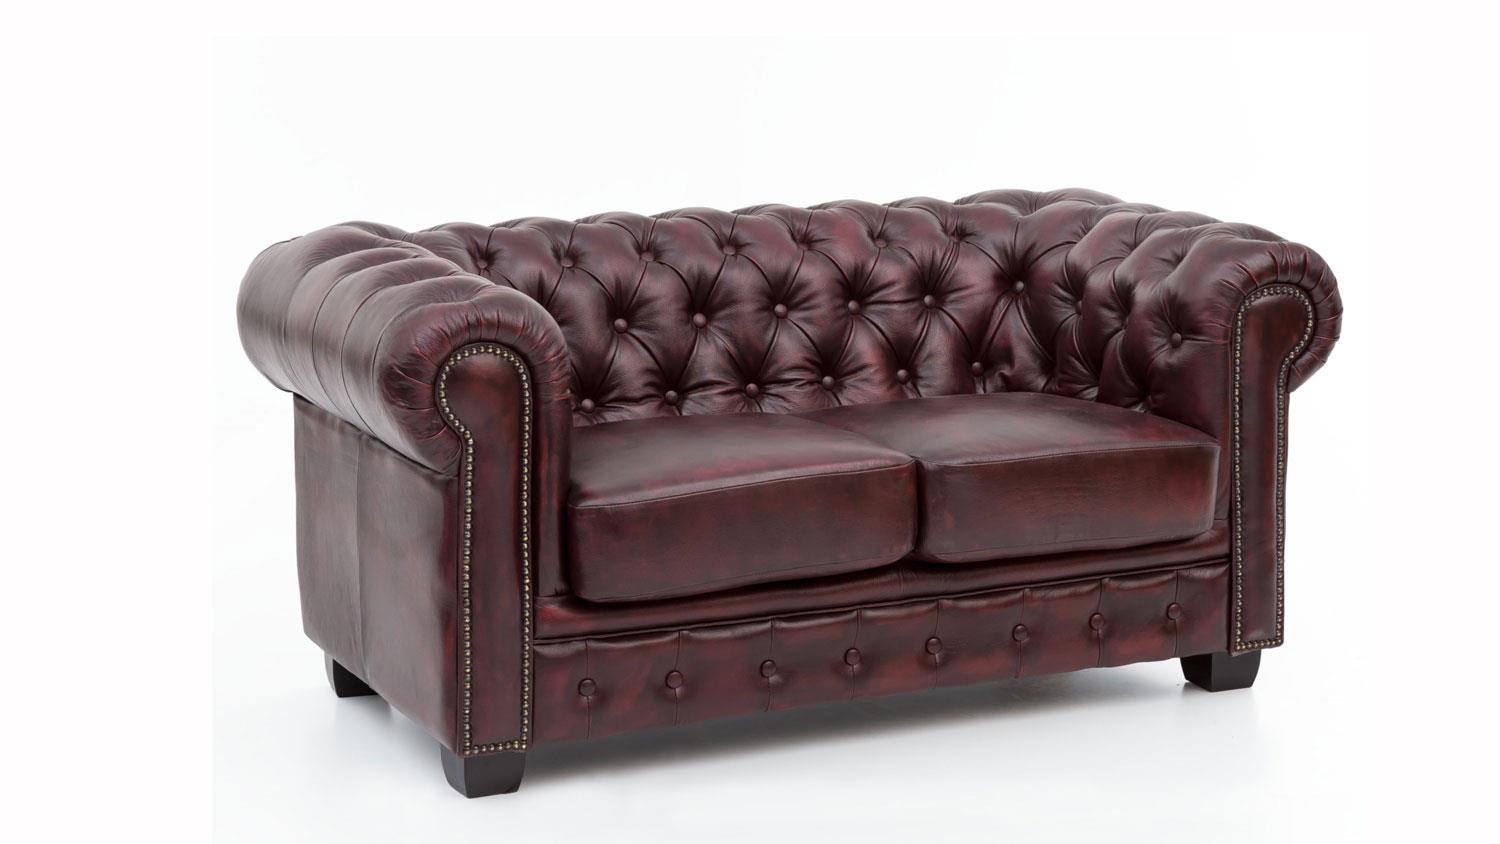 Chesterfield Schlafsofa Chesterfield Sofa 2 Sitzer Leder Rot Antik Luxus